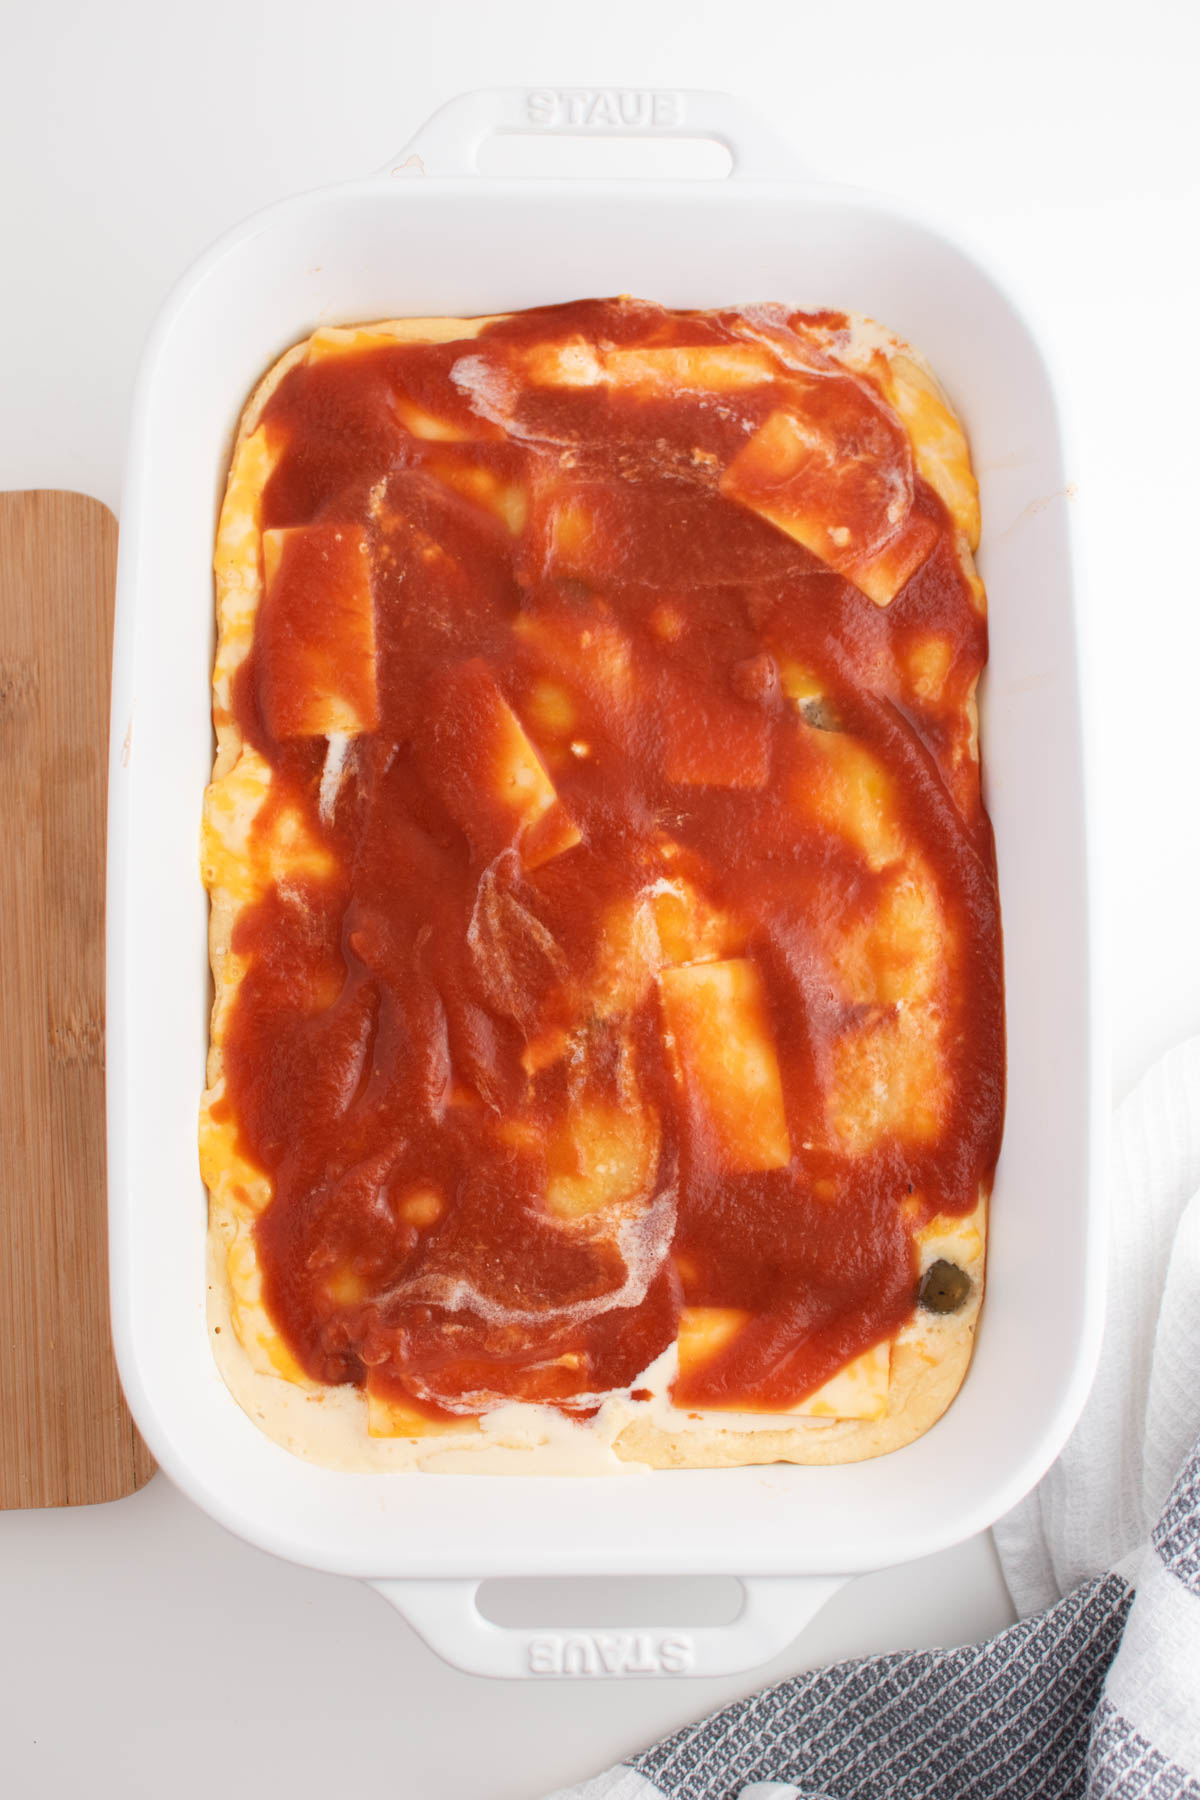 Tomato sauce on half baked chile relleno casserole in white baking dish.